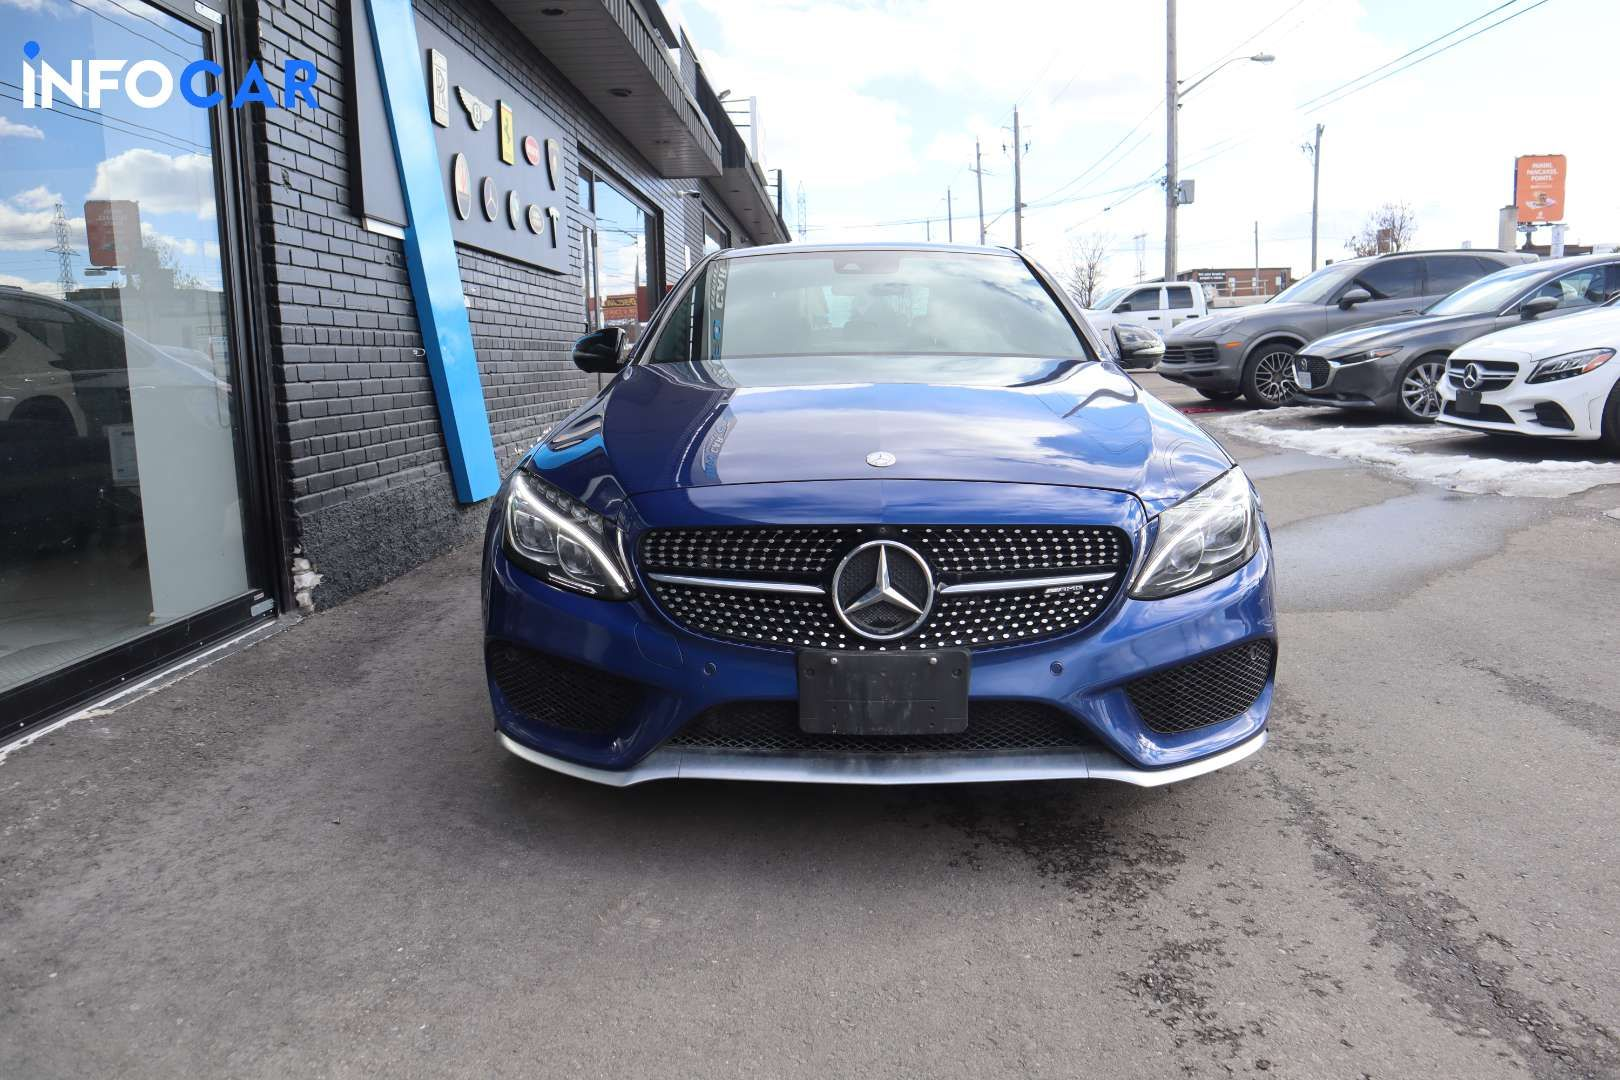 2017 Mercedes-Benz C-Class 43 AMG - INFOCAR - Toronto's Most Comprehensive New and Used Auto Trading Platform